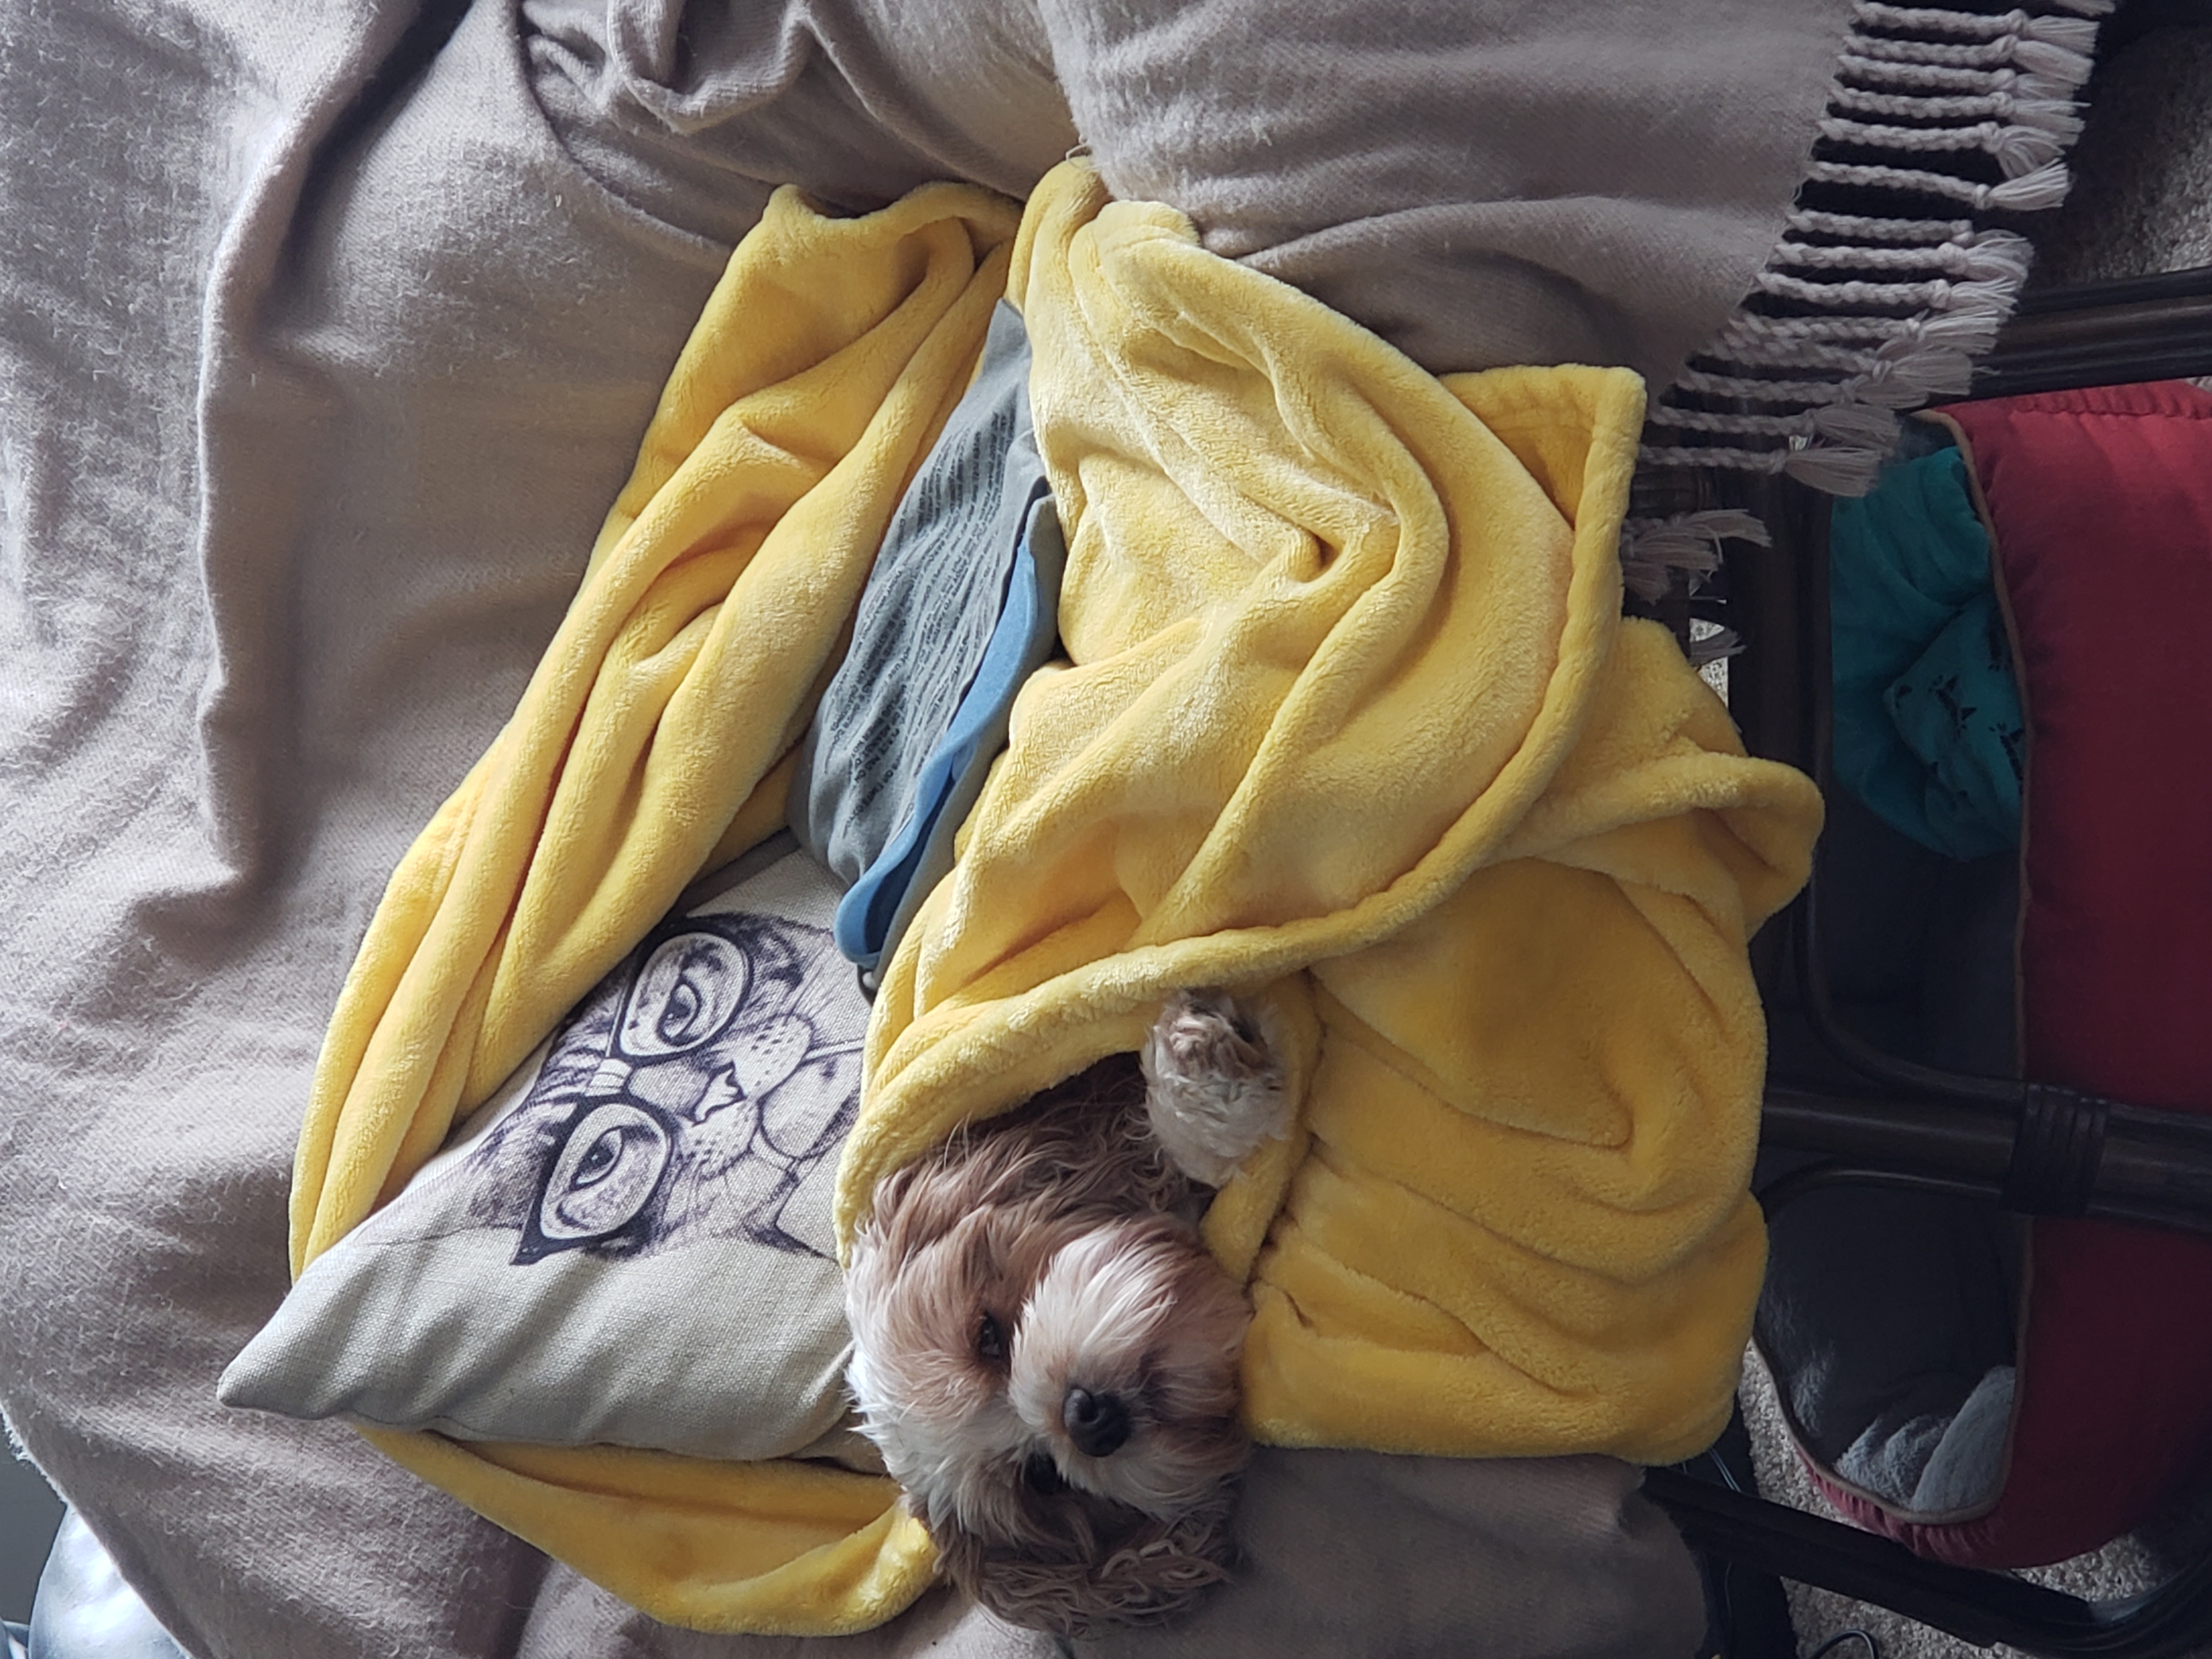 dog wrapped in comfy blankets and pillows